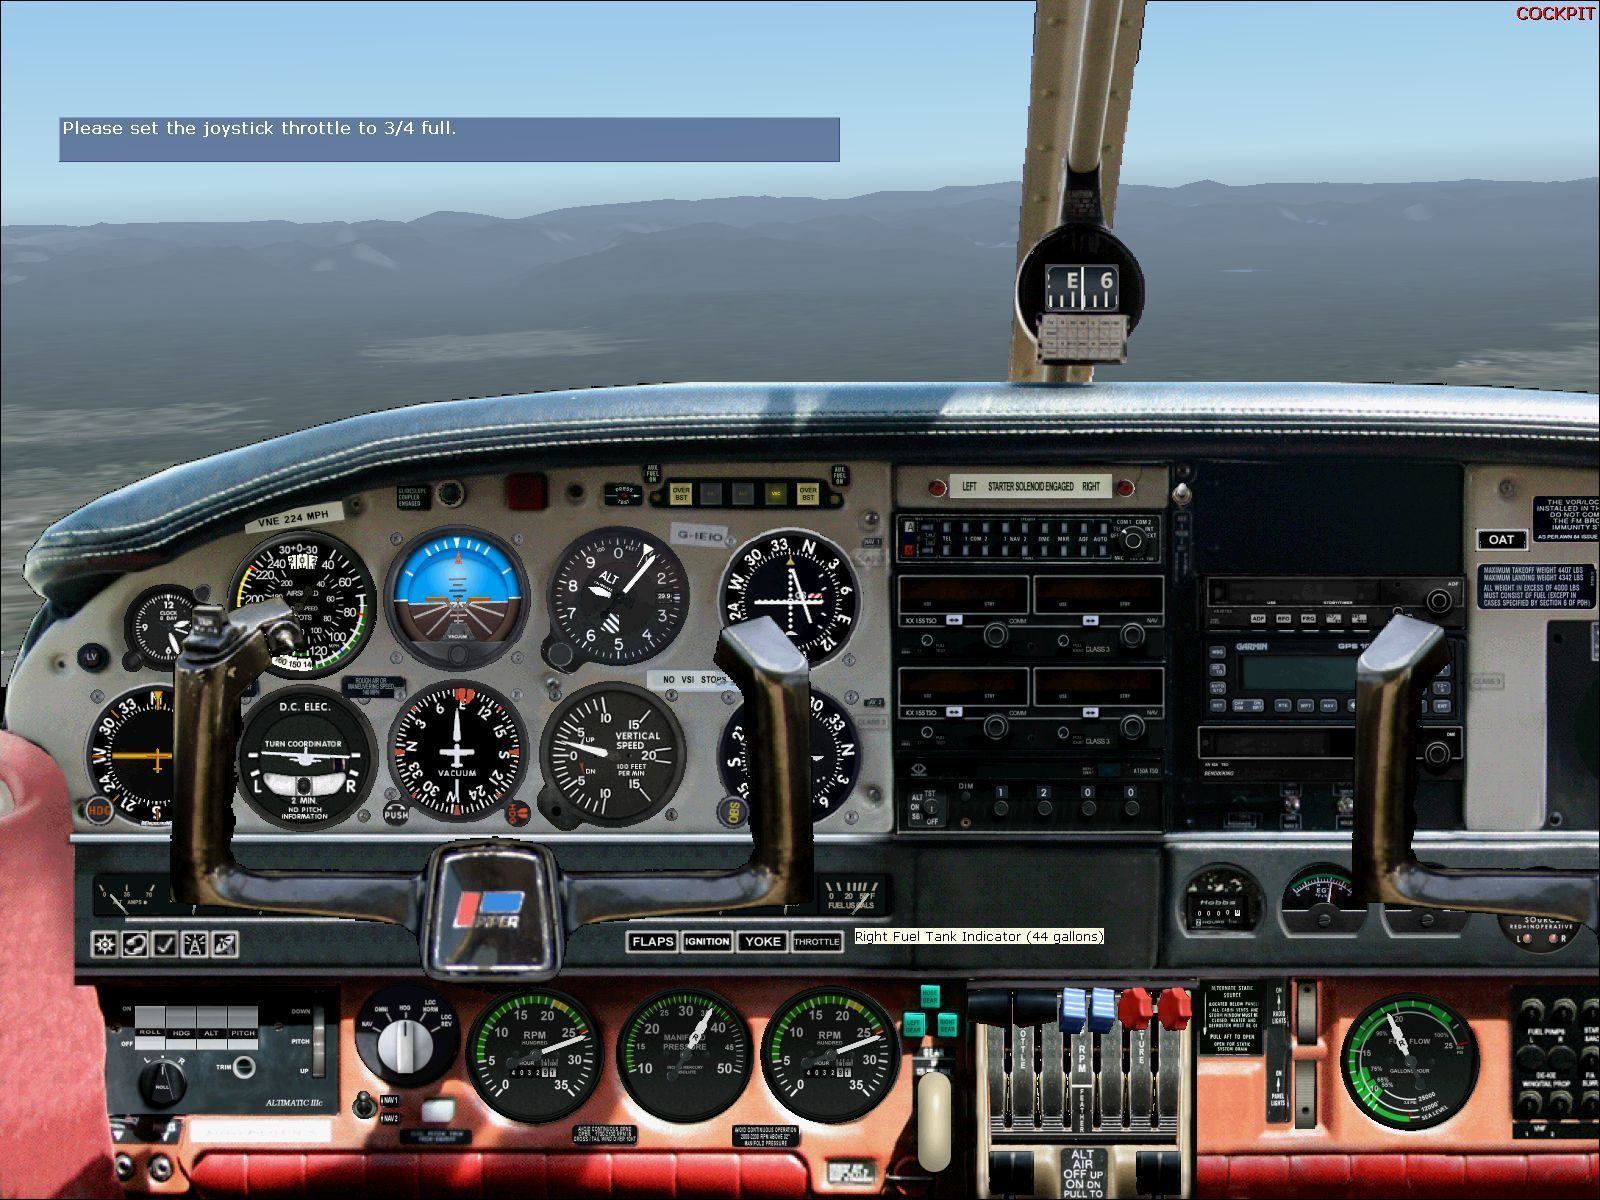 Flying Club Windows The flight simulator's Commercial Pilot lessons with Rod Machado have been altered to use the Seneca II PA34-200T. This is the instrument panel